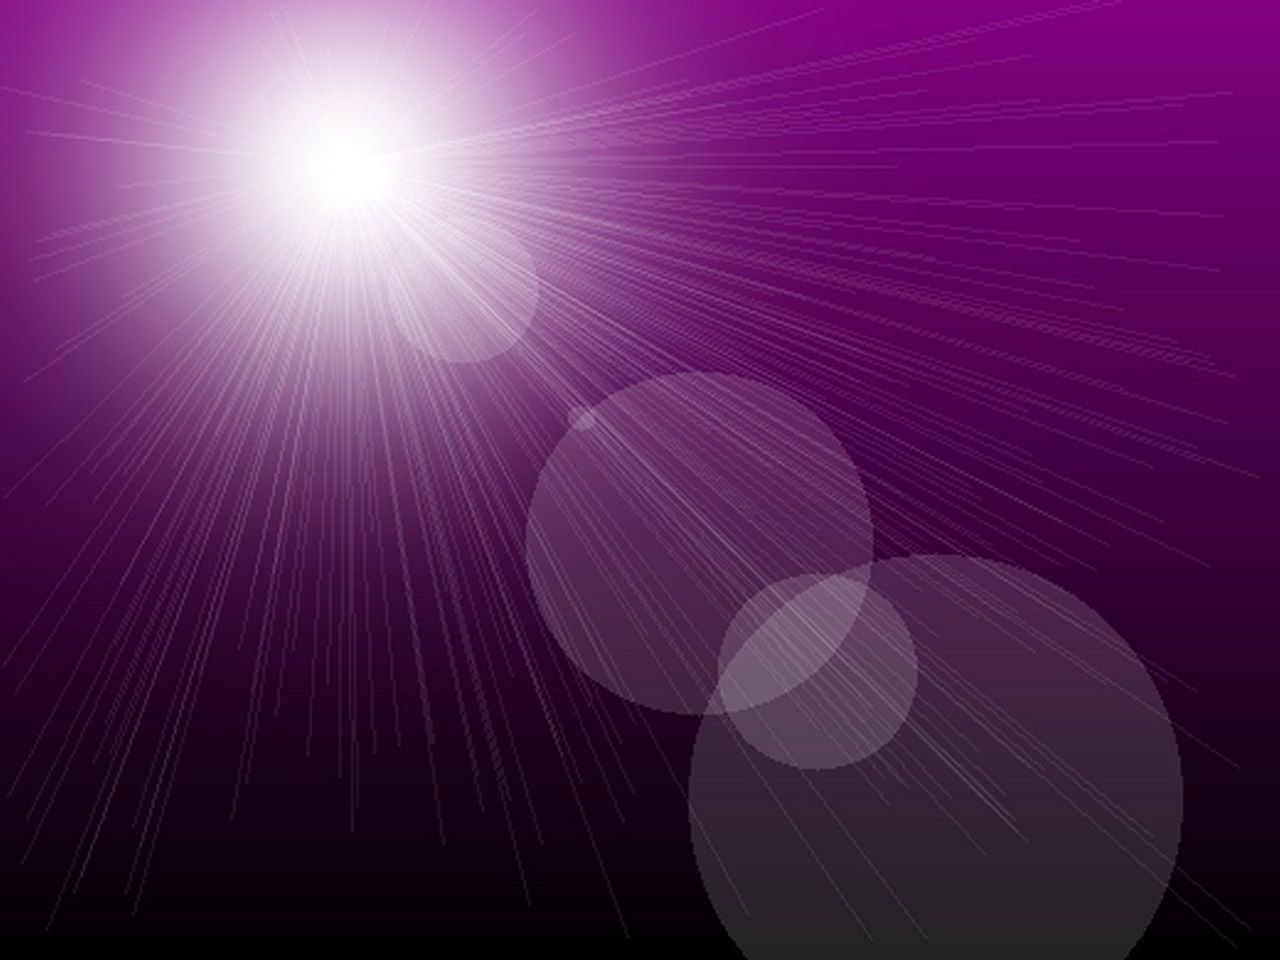 Purple Backgrounds Sunburst On Purple Background Free Stock Photo Hd Public Domain